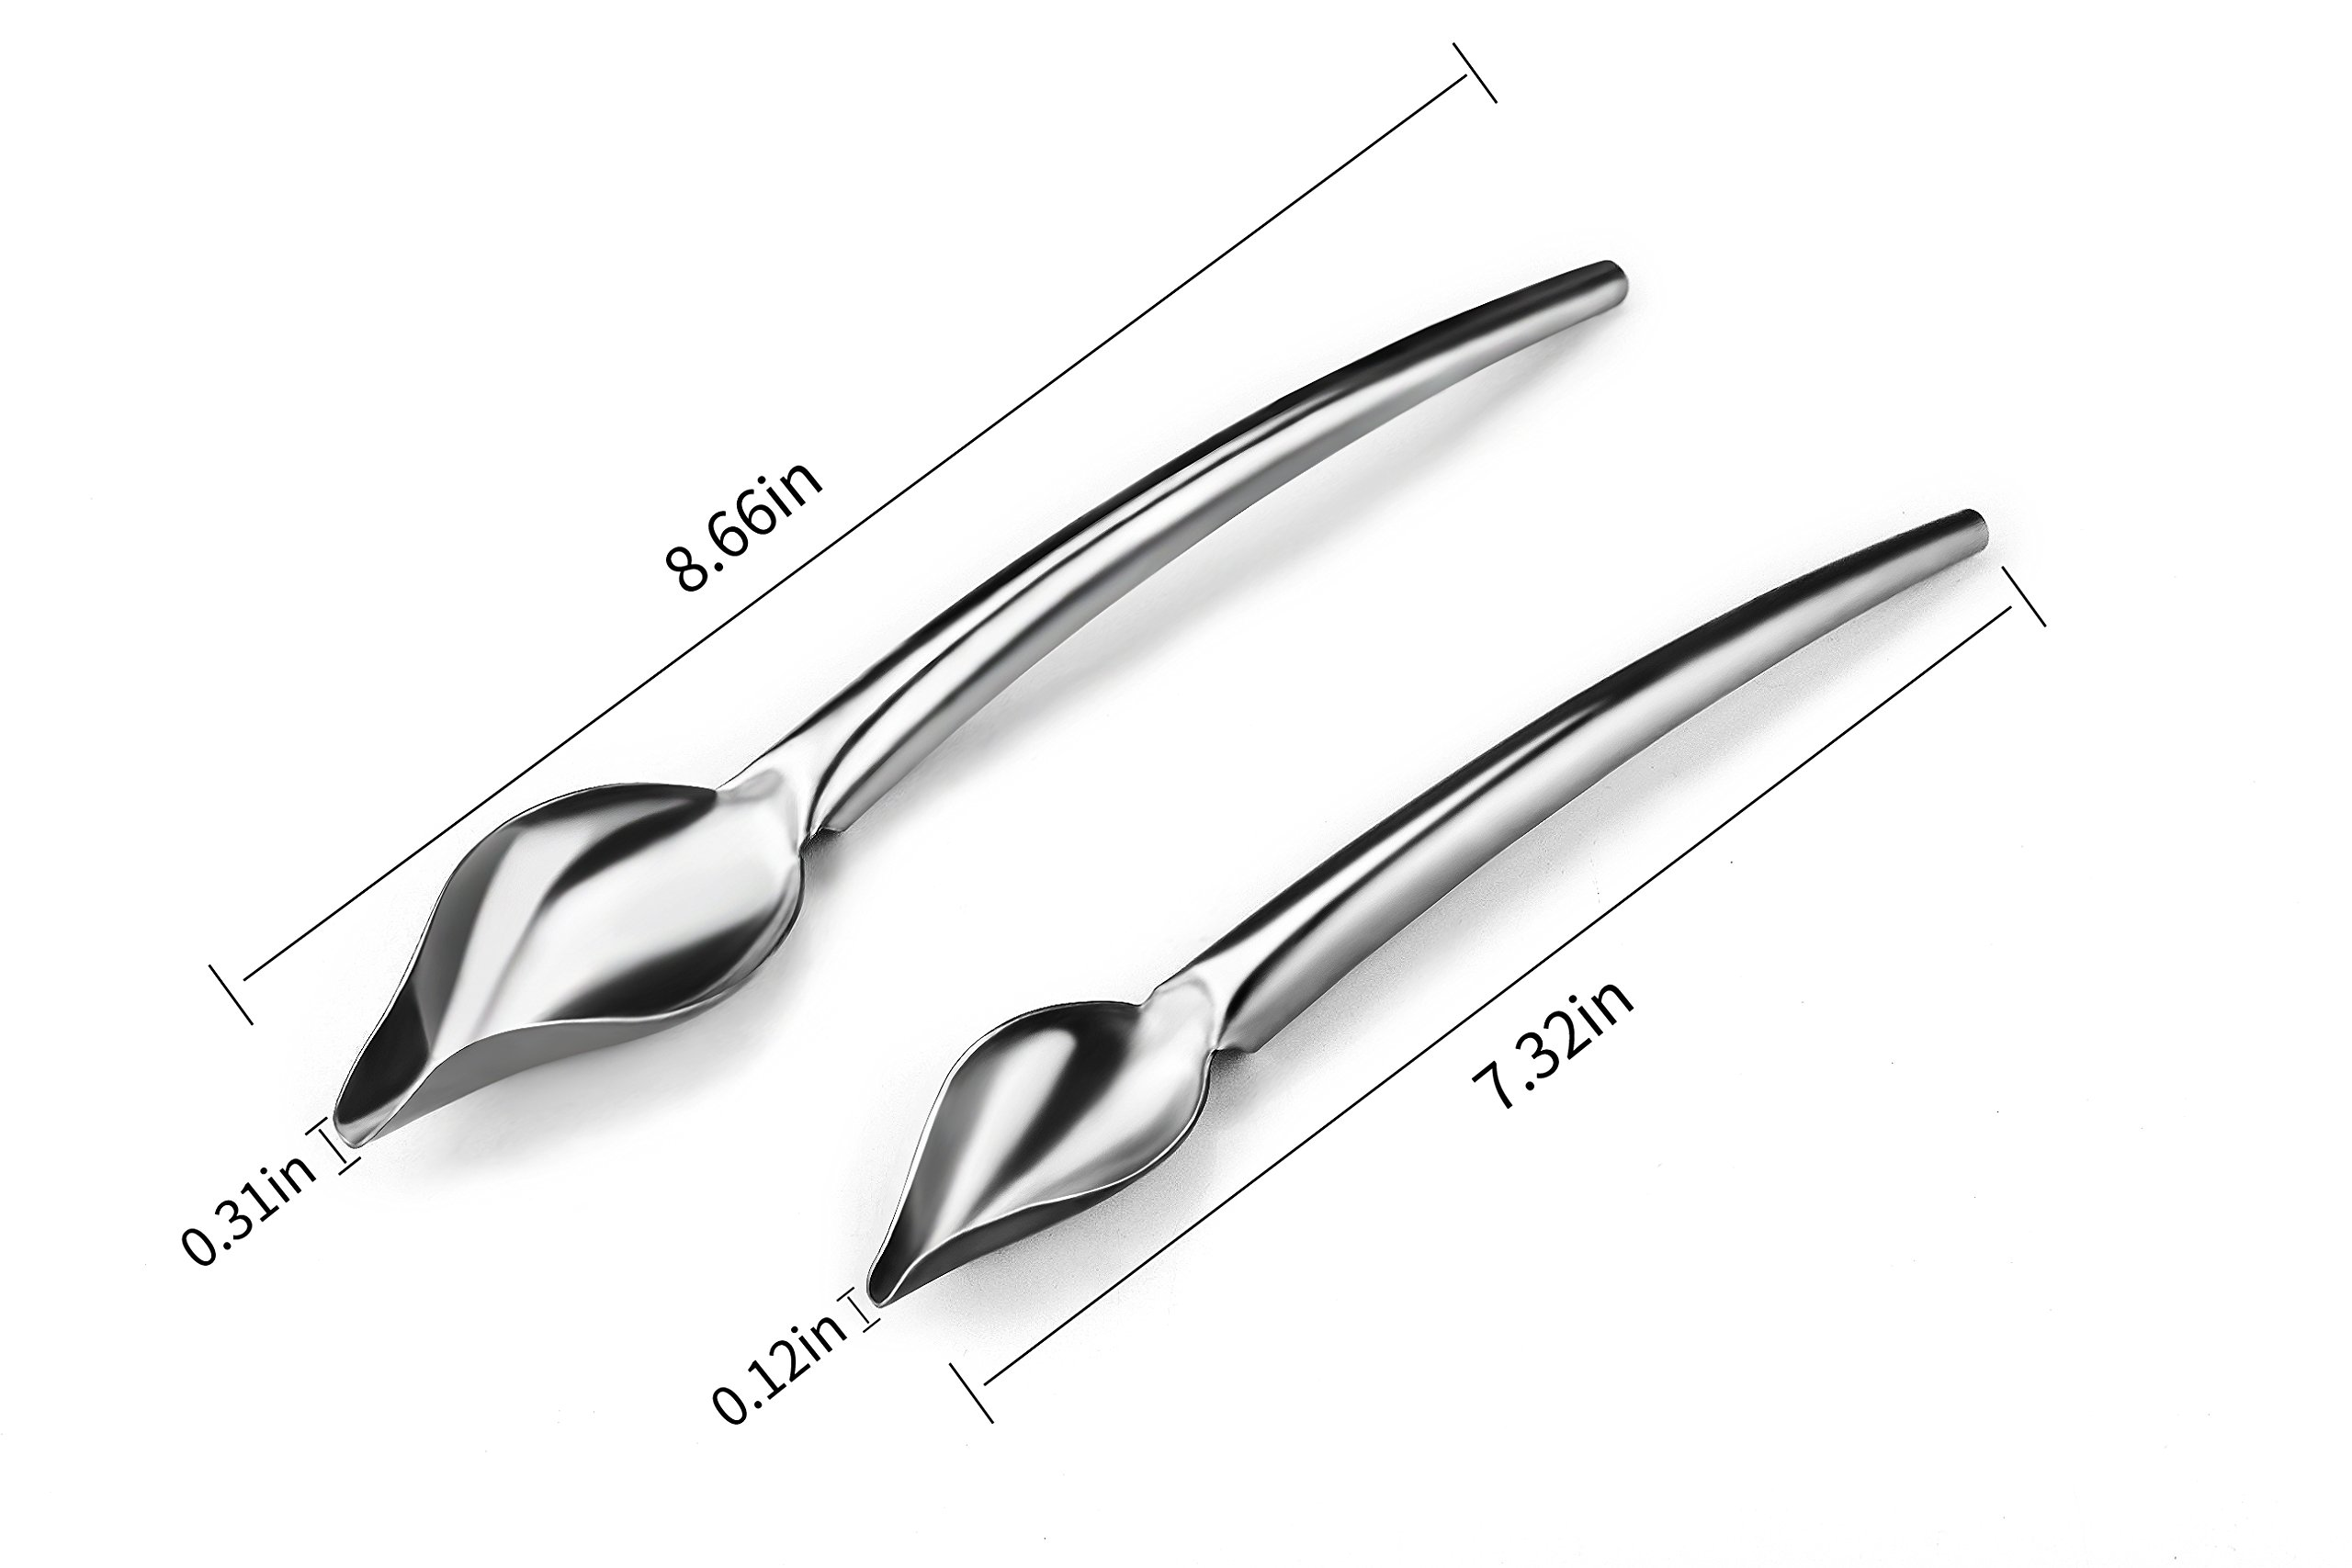 Dcrt Deco Spoon Multi-use Precision Chef Culinary Drawing Spoons for Decorating Plates, set of 2 by Dcrt (Image #2)